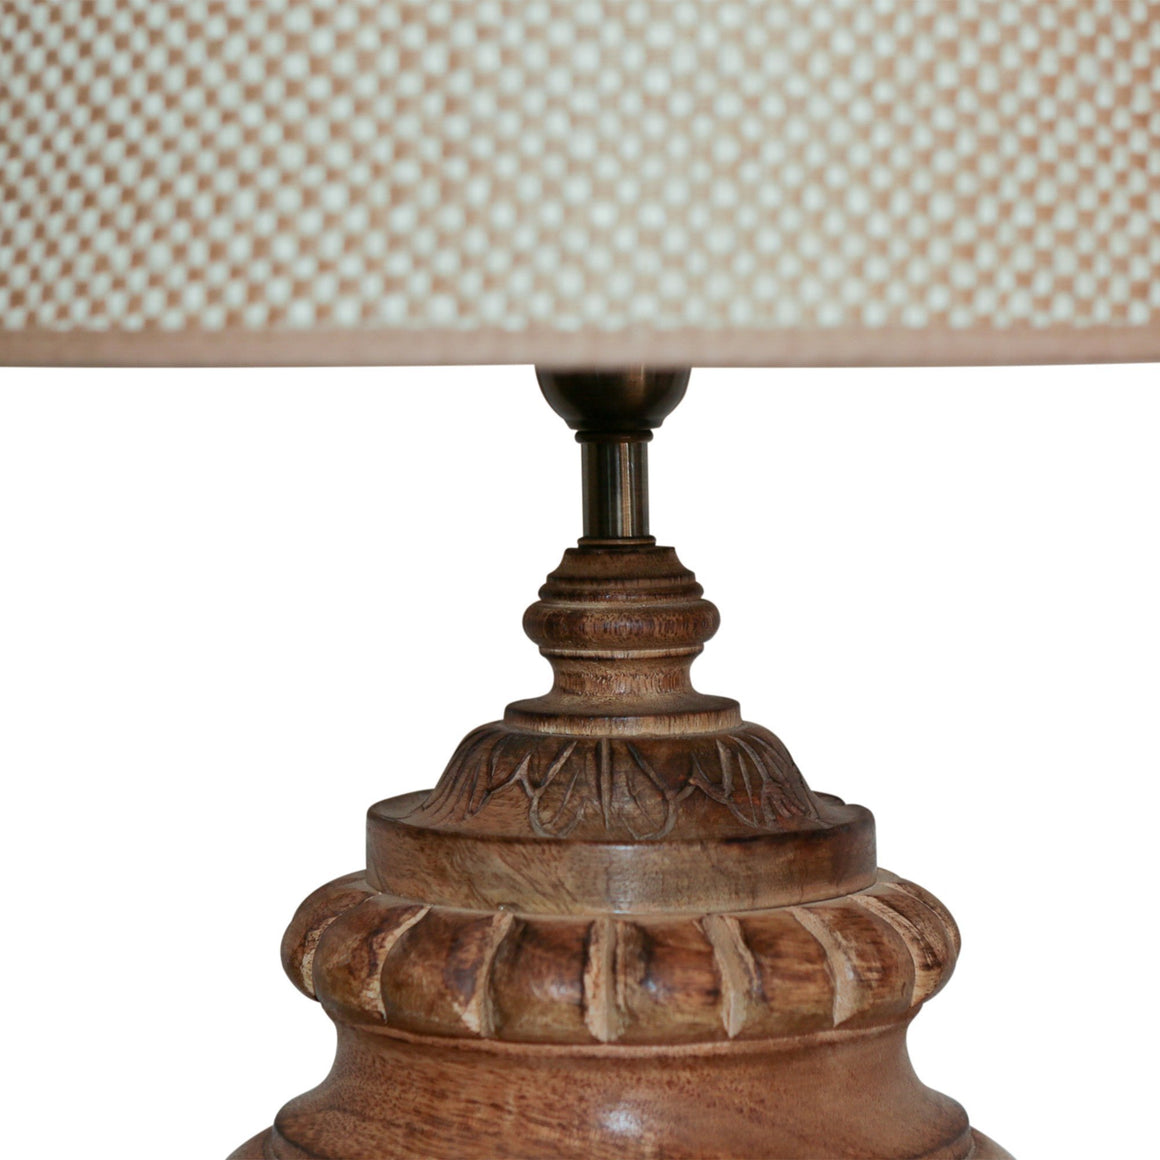 COLMAR WOODEN TABLE LAMP W/ SHADE